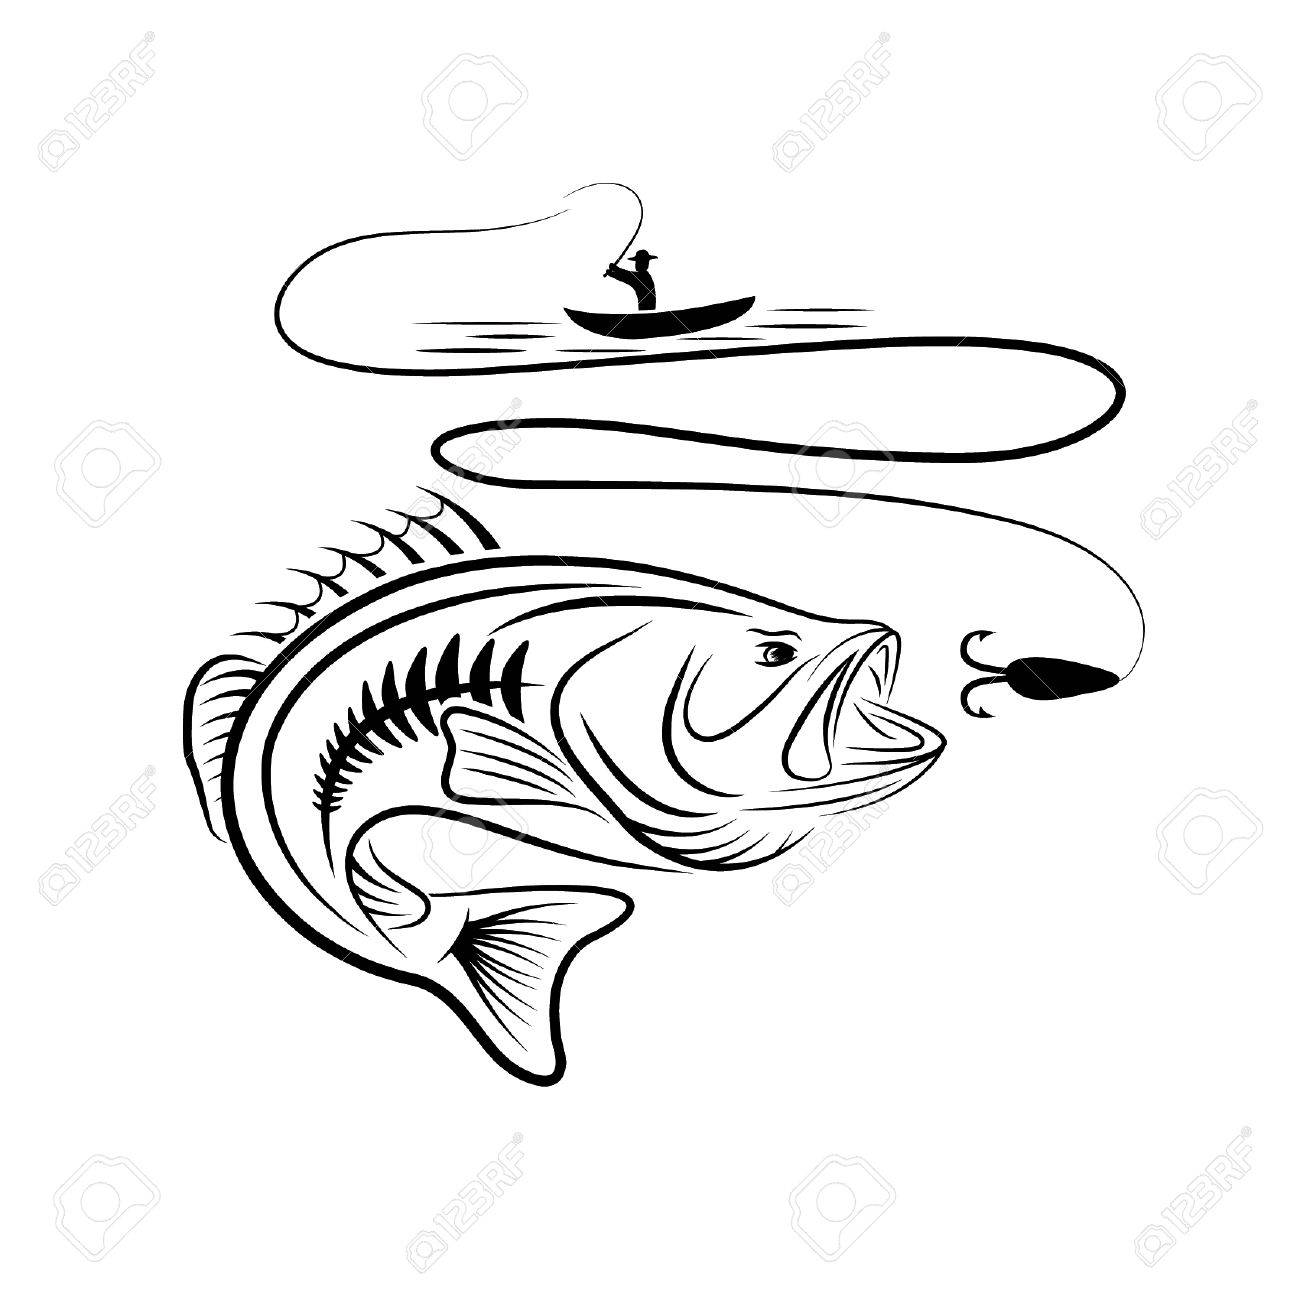 1300x1300 Illustration Of Fisherman In A Boat And Big Mouth Bass Royalty